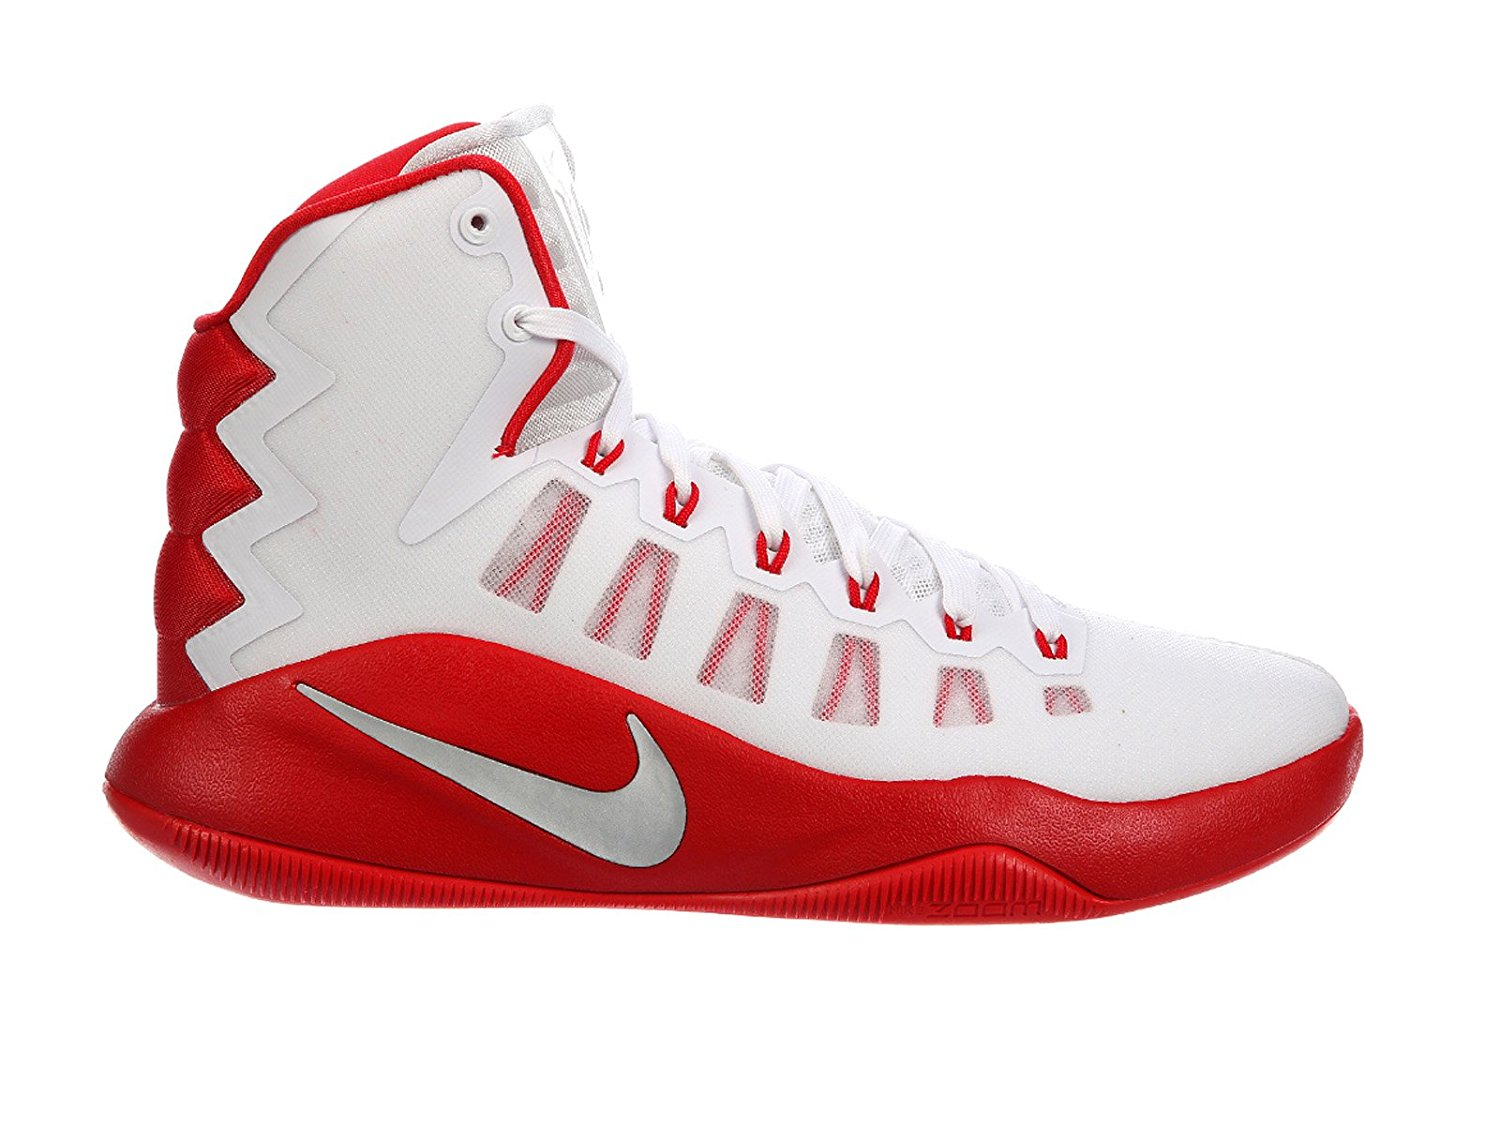 fe7ed9a92c4 Get Quotations · Nike Men s Hyperdunk 2016 Synthetic Basketball Shoes